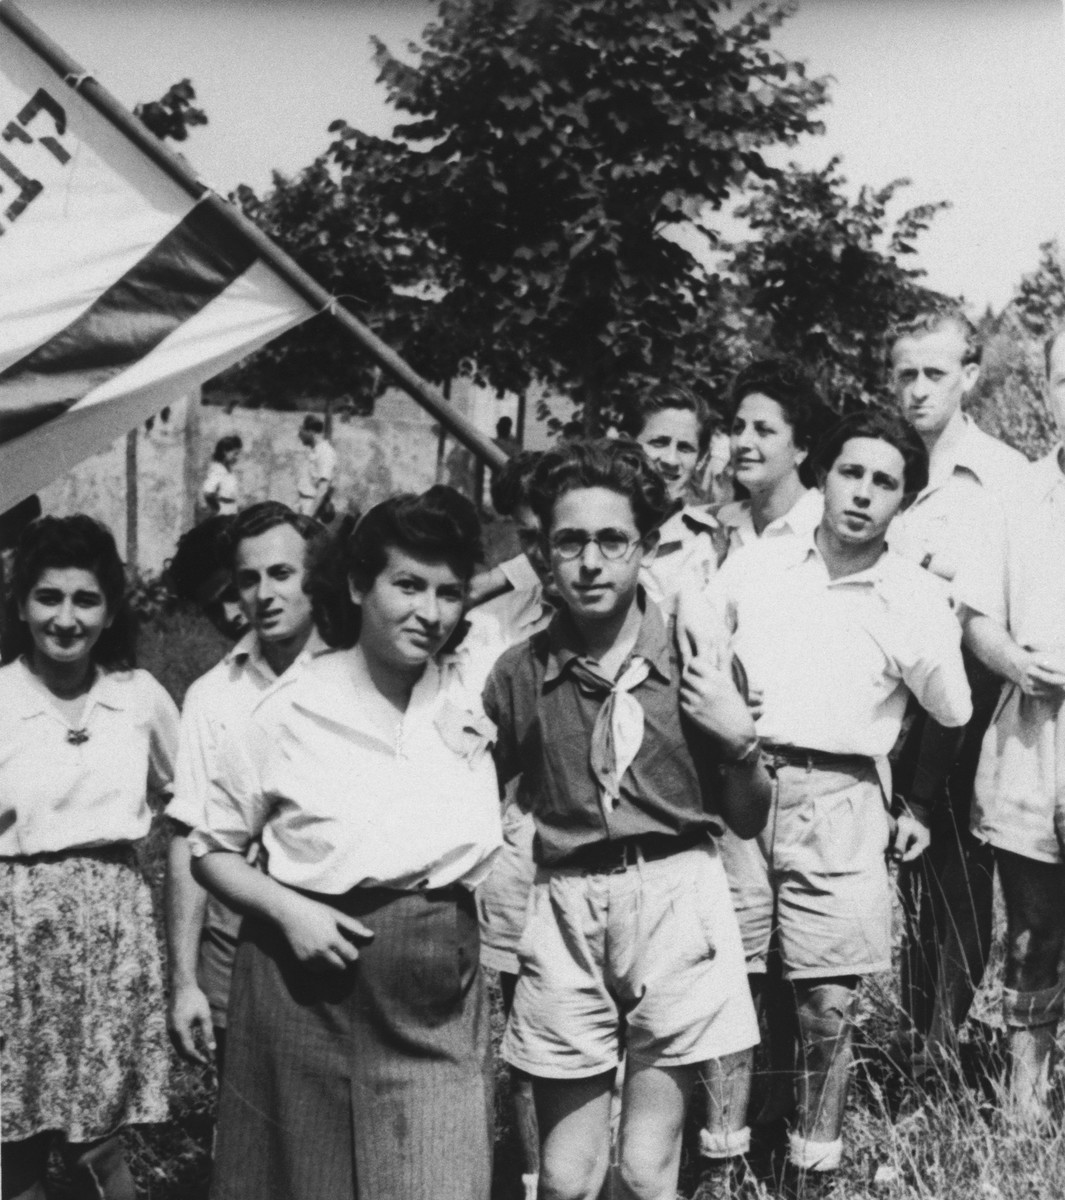 Akiva Kohane and a group of friends pose with a Zionist flag during a sports day in Tradate Italy.